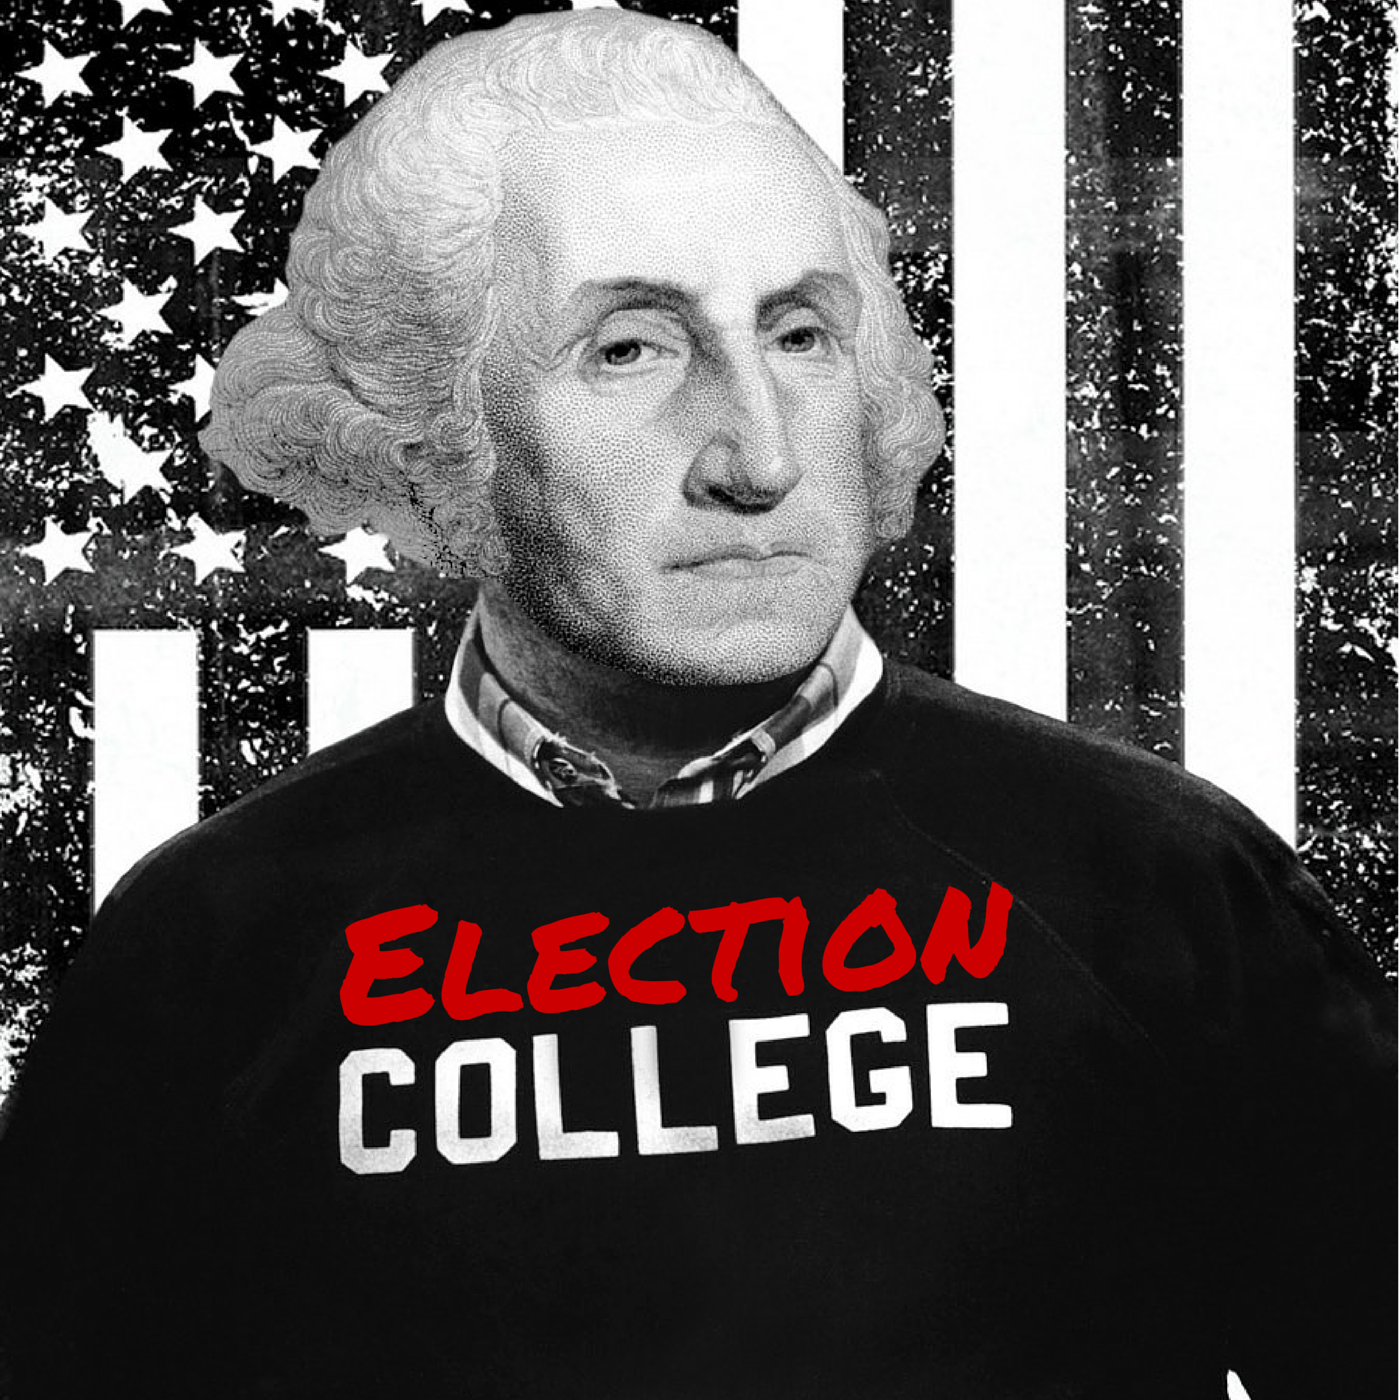 Millard Fillmore - Part 1 | Episode #193 | Election College: United States Presidential Election History